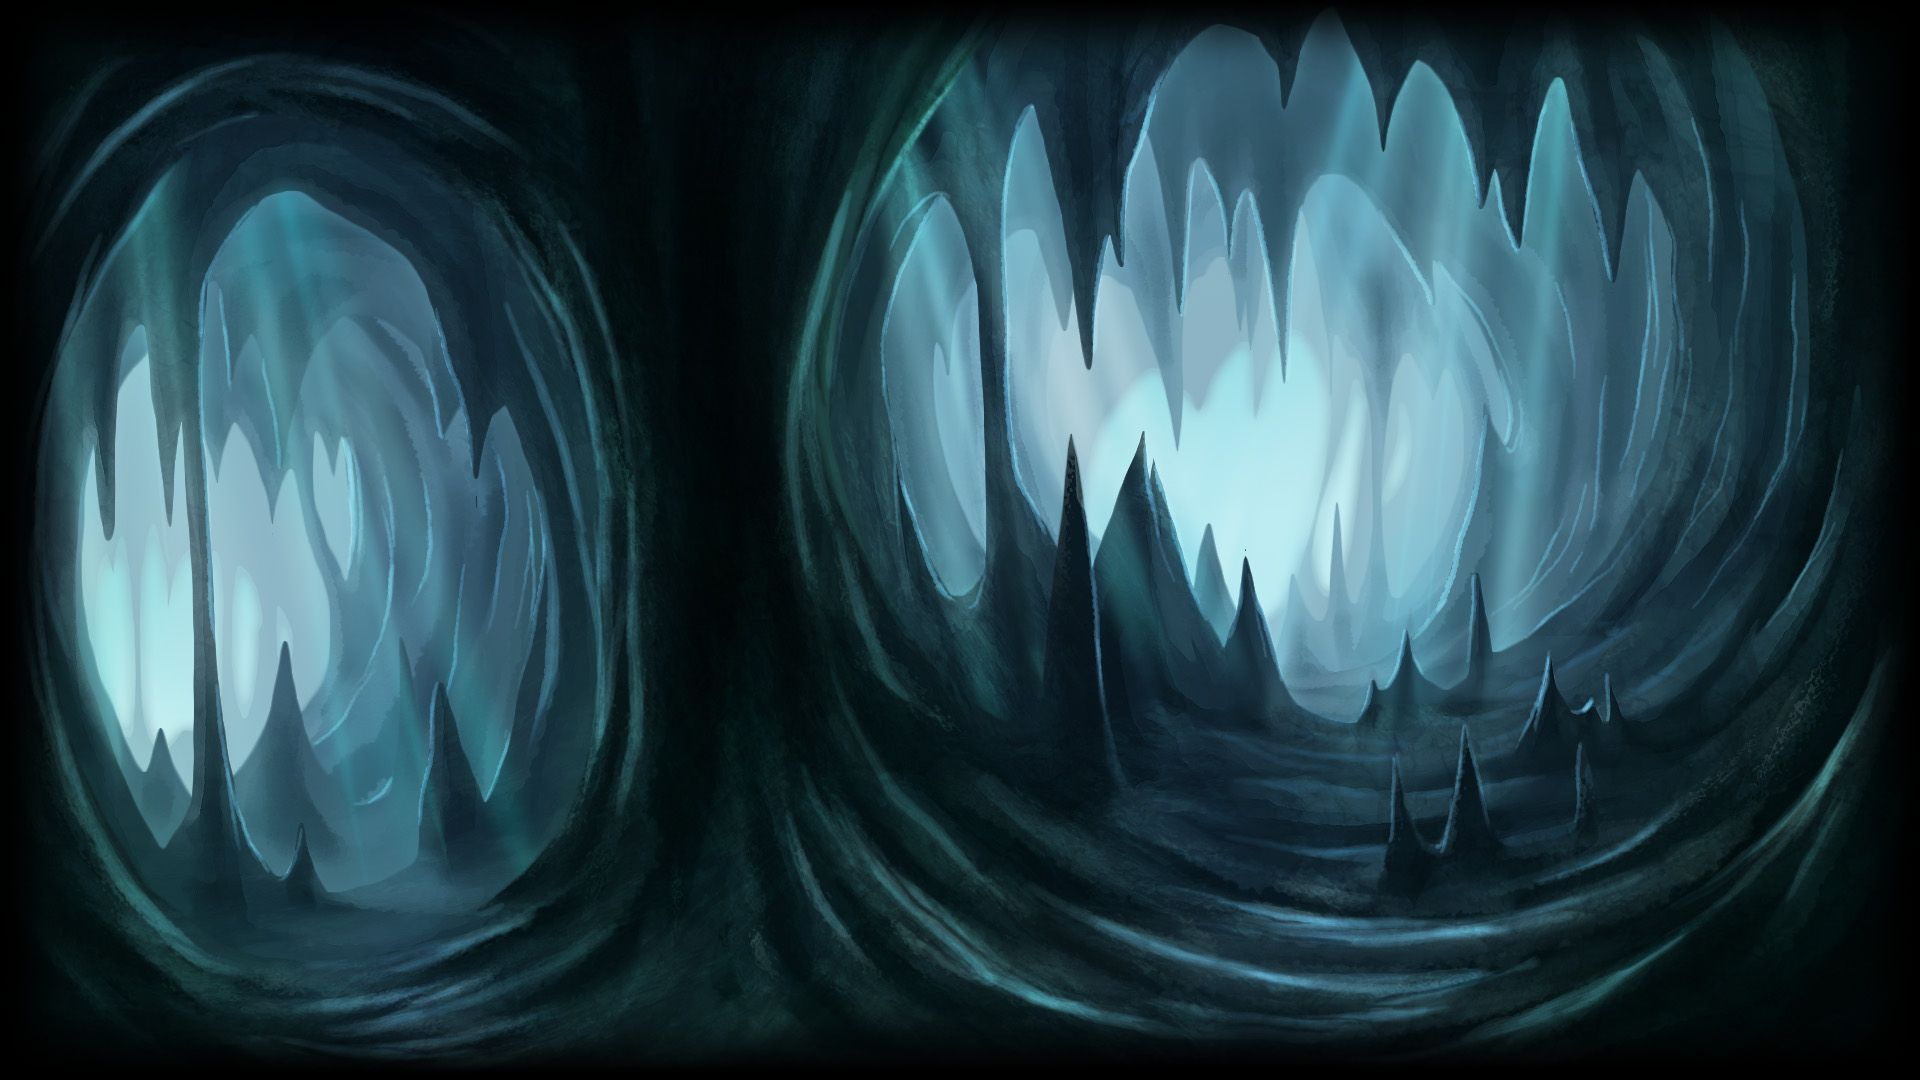 2d cave background - Google 검색 | 2d game background | 2d